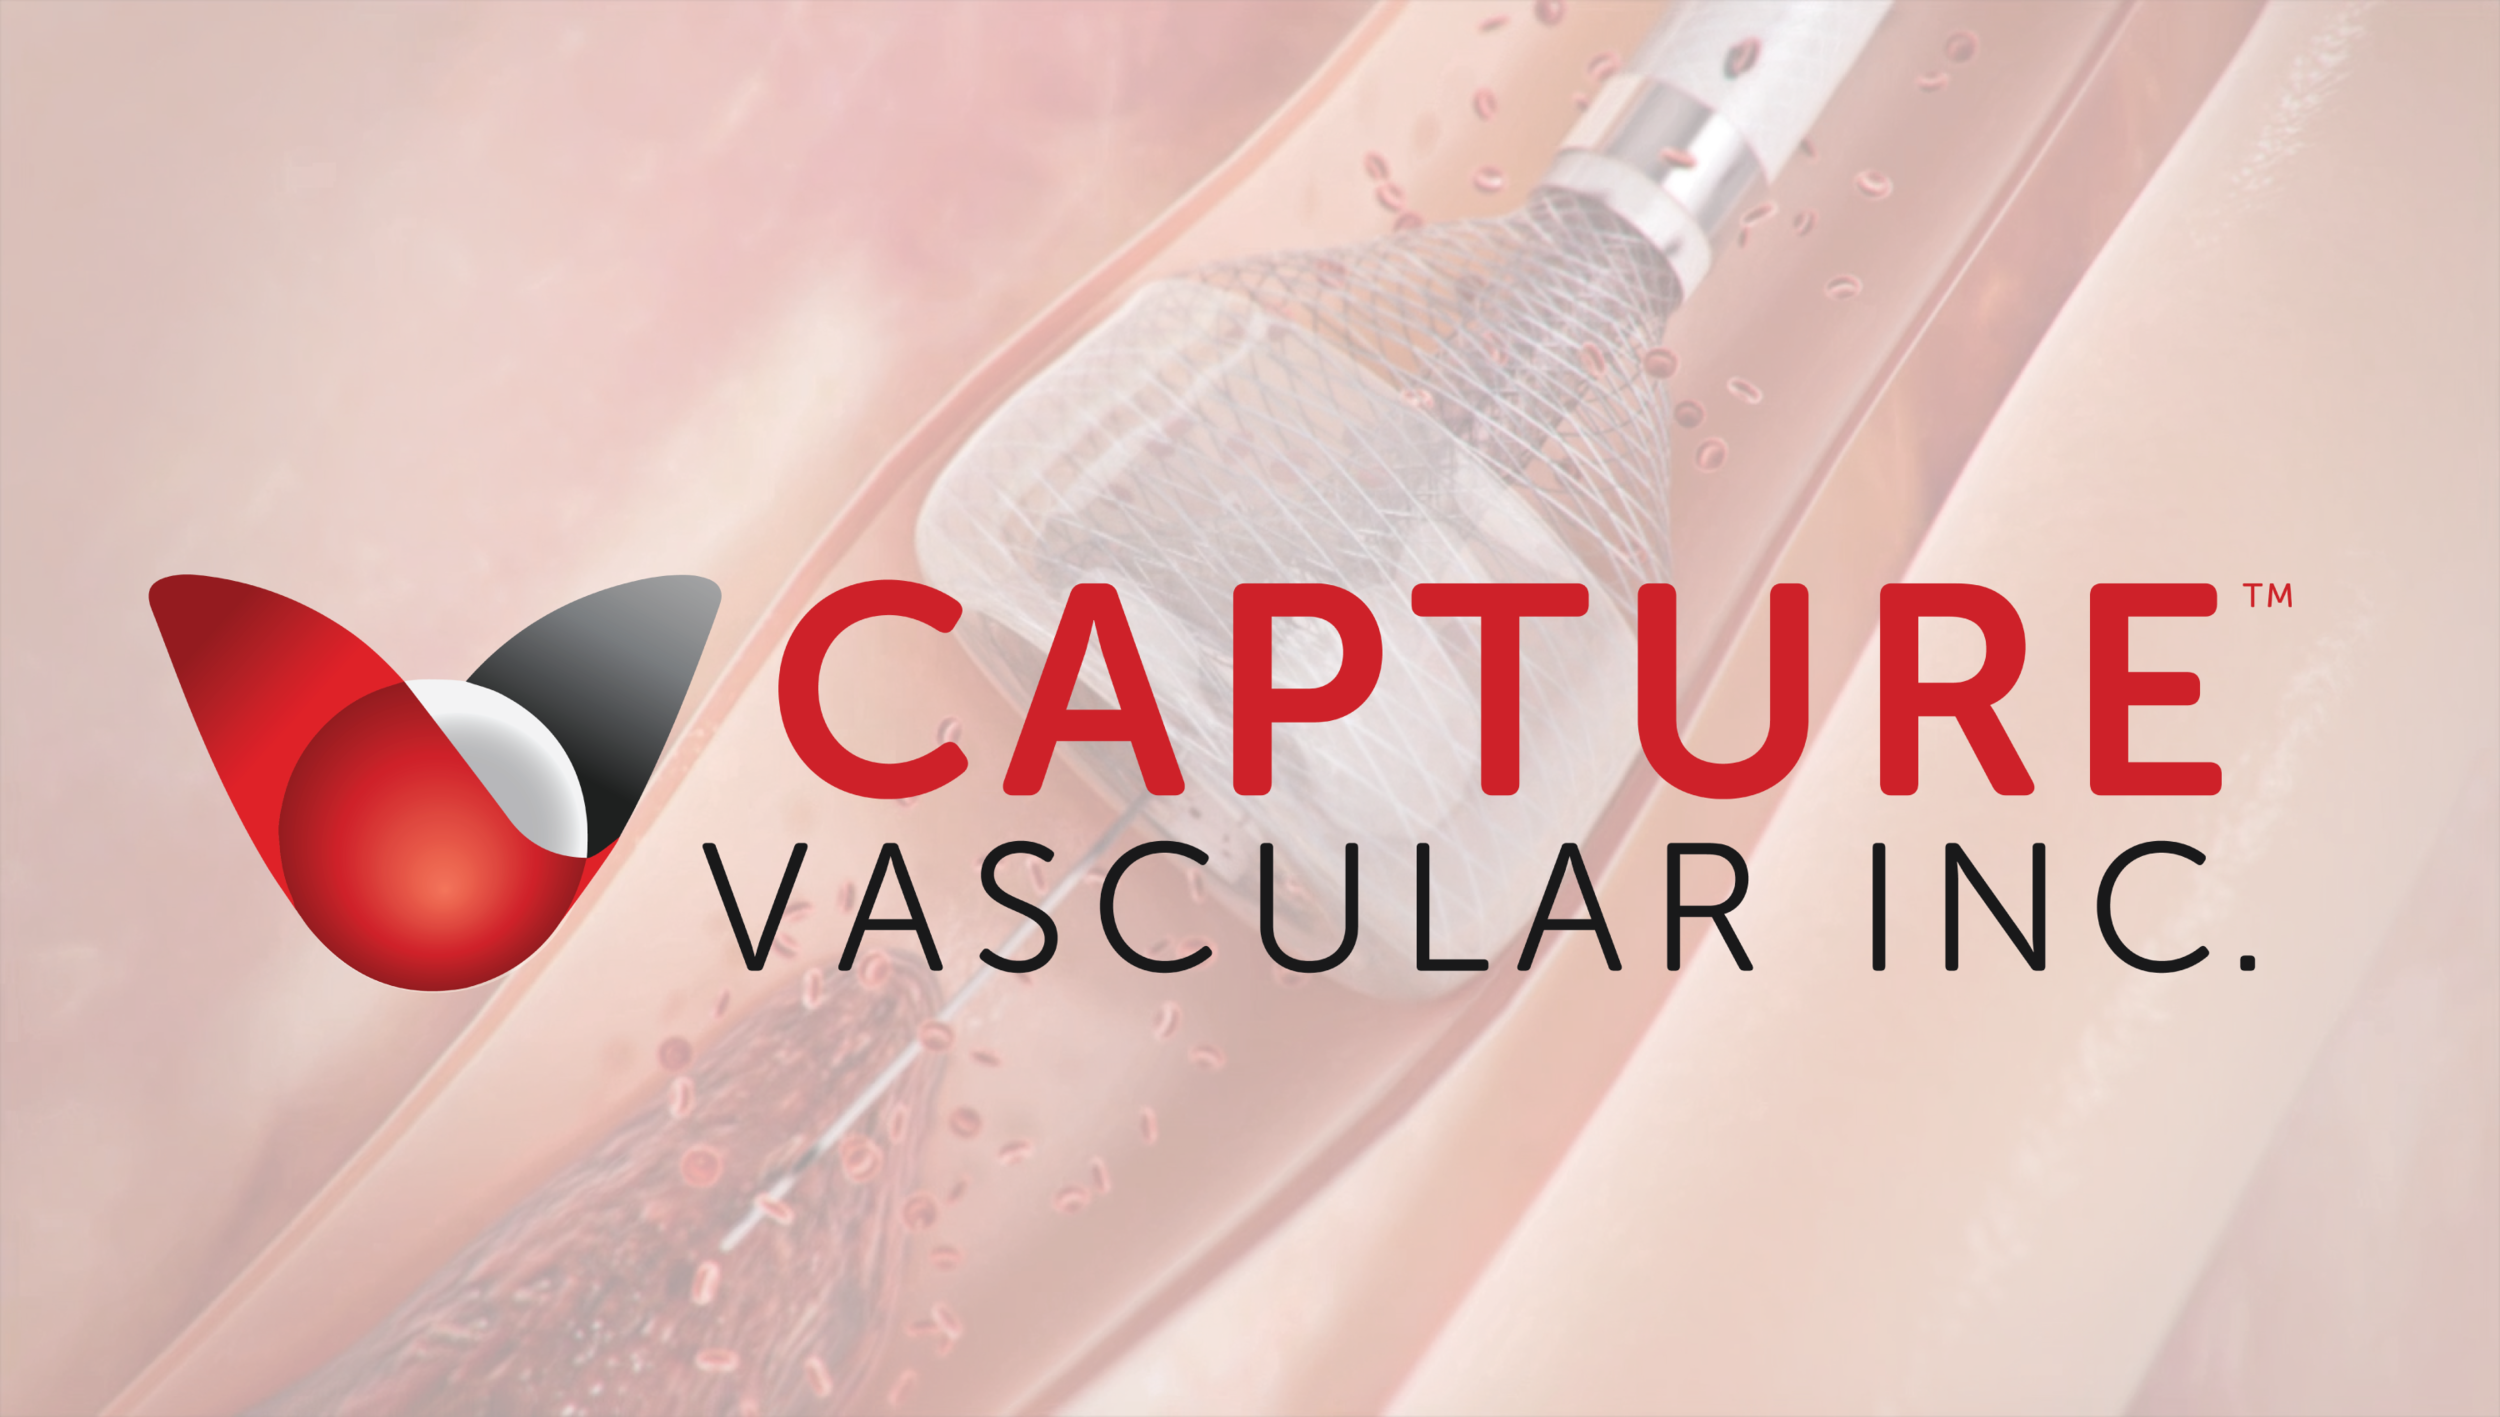 Capture's proprietary MegaVac Mechanical Thrombectomy System offers several unique features in one simple device.